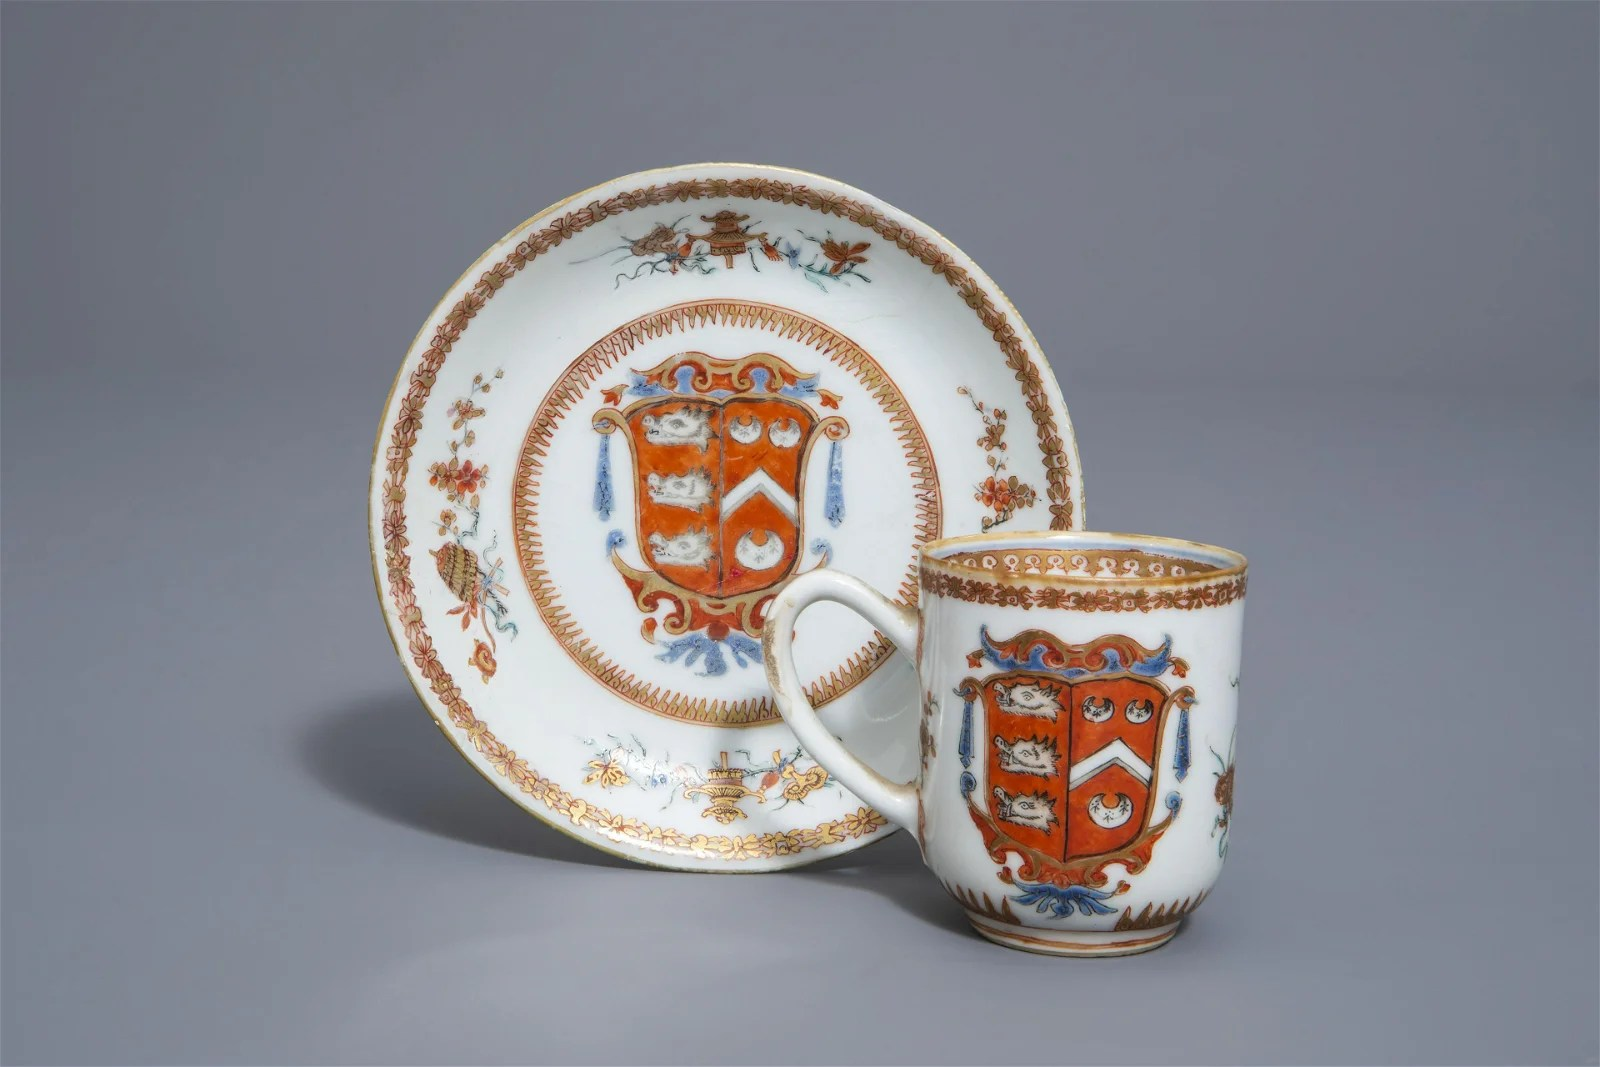 A Chinese export armorial cup and saucer with the arms